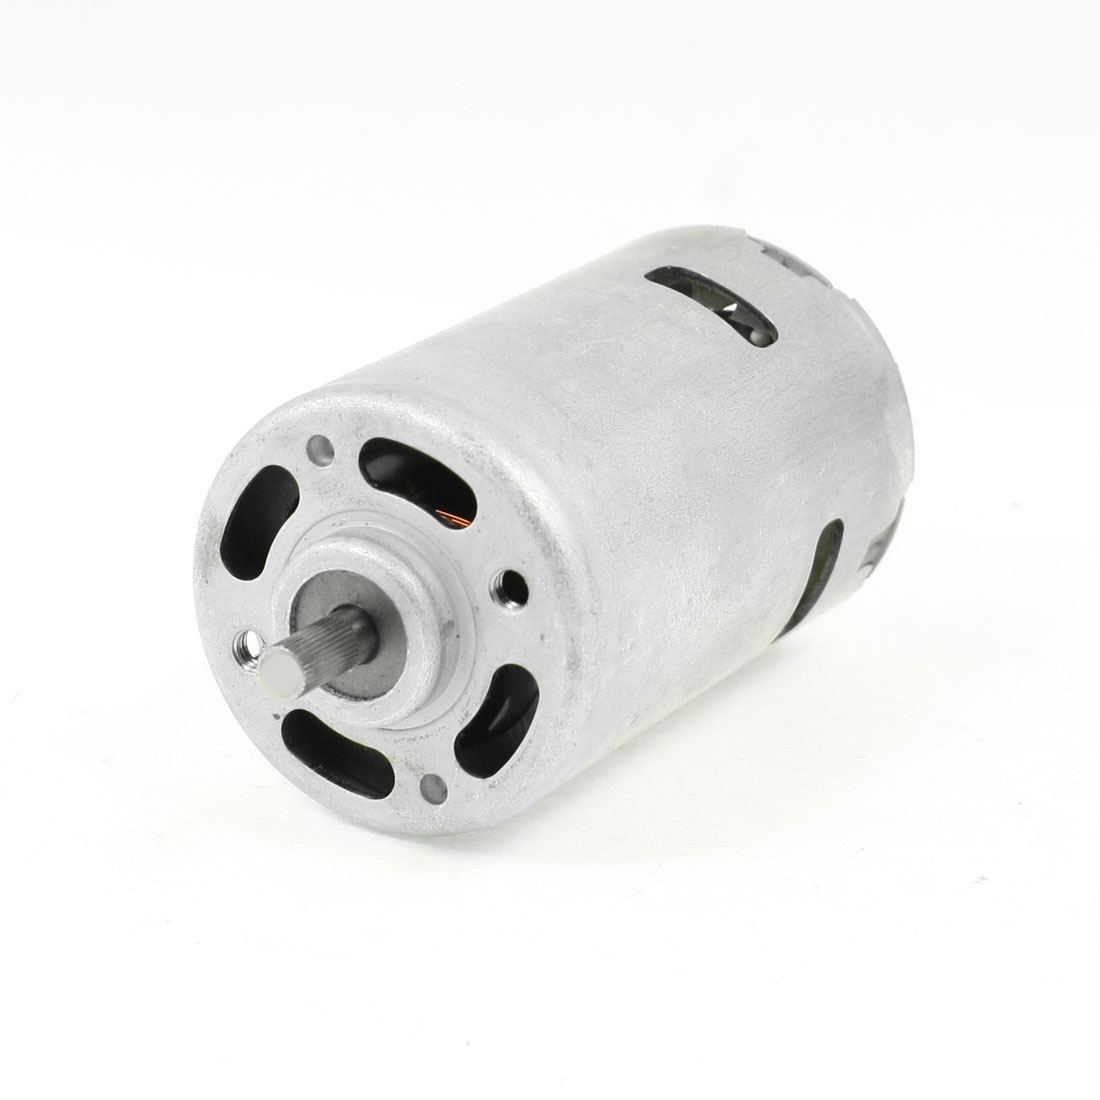 4800RPM 24V 0.33A High Torque Cylinder Magnetic Electric Mini DC Motor